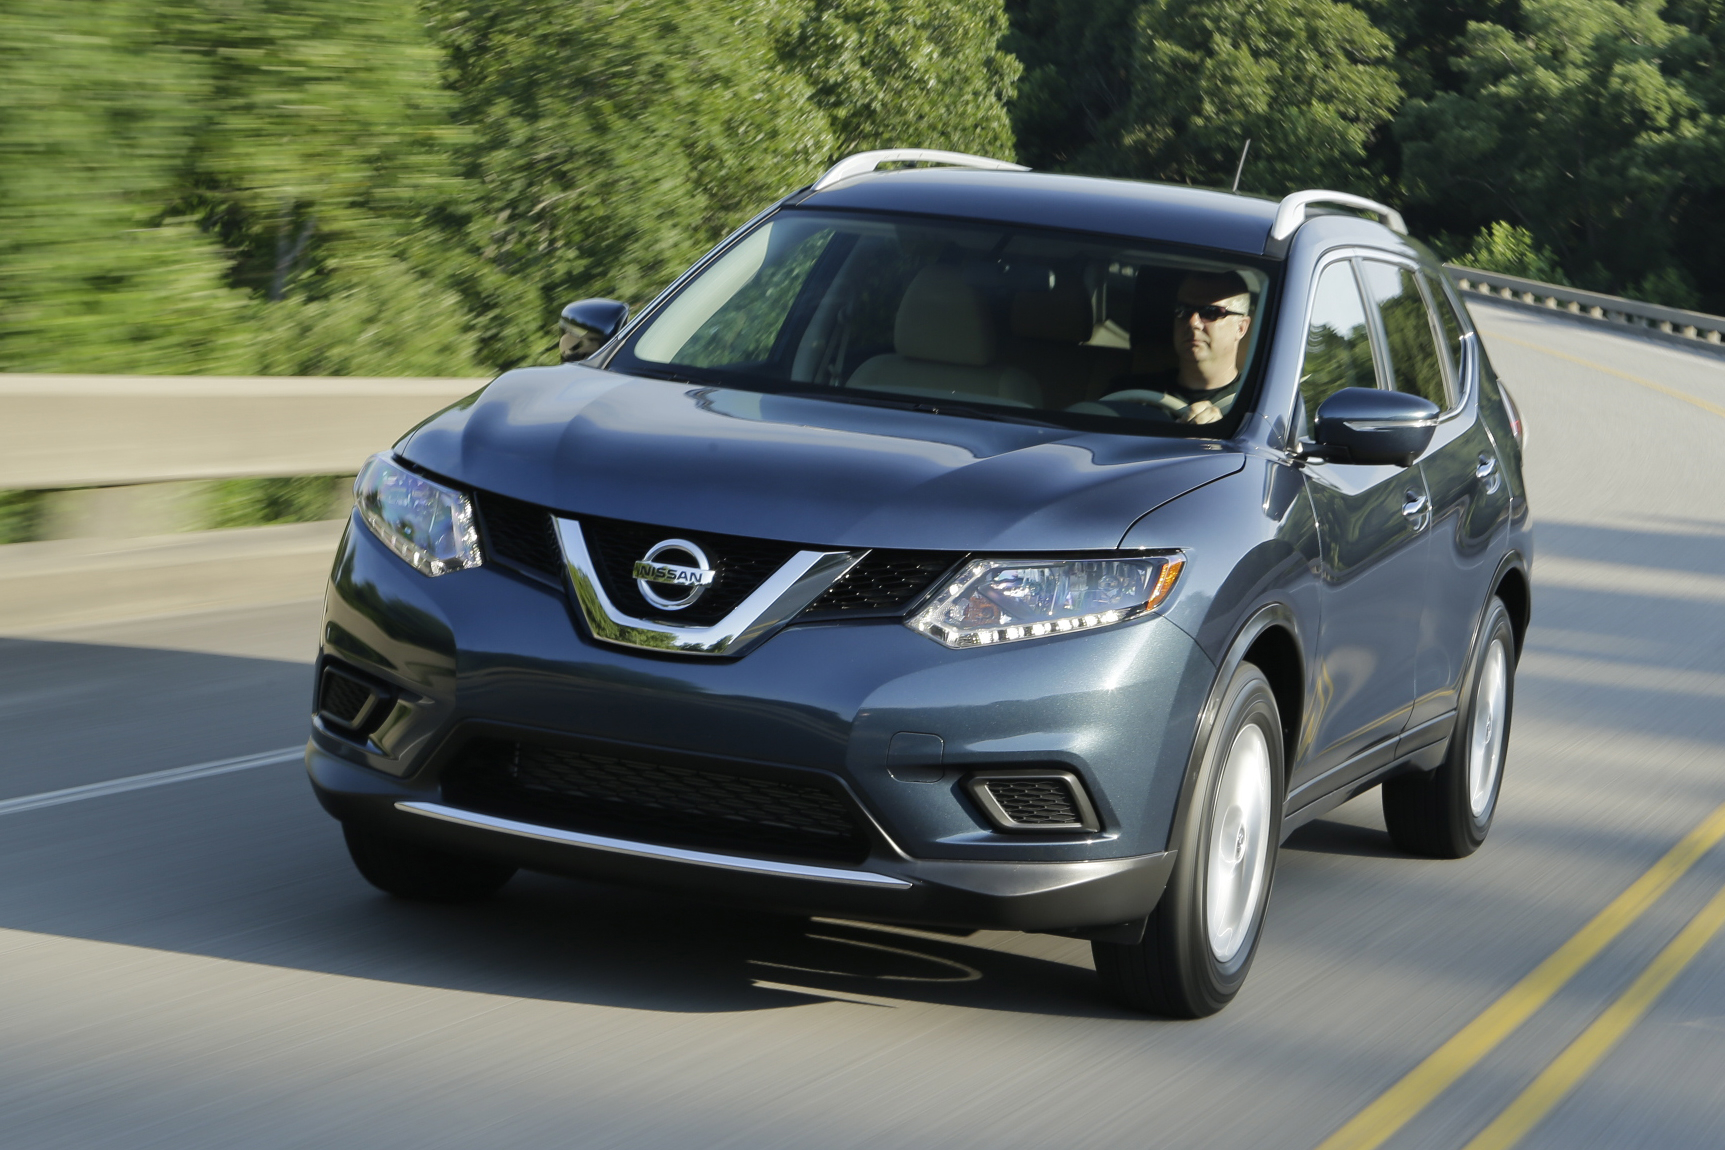 2014 Nissan Rogue | Top Speed. »